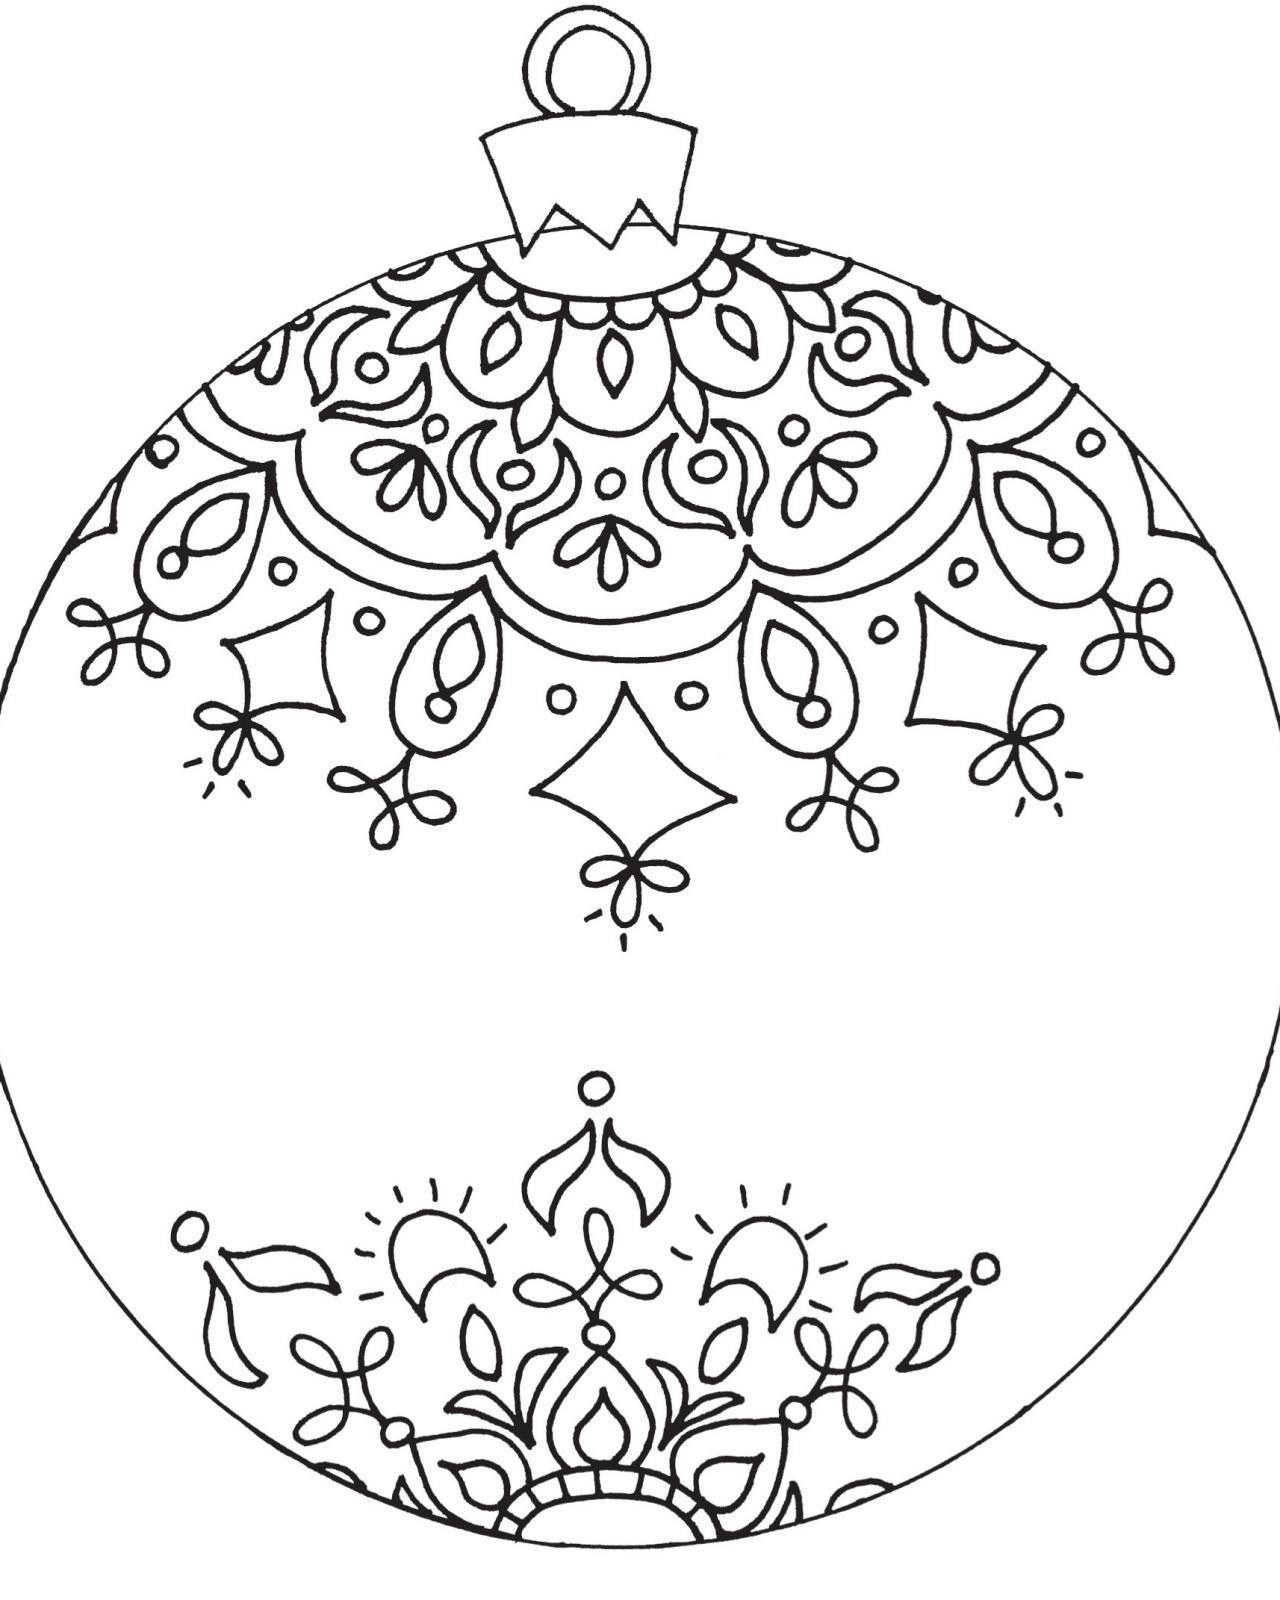 Christmas Ornaments Coloring Pages With Printable Ornament Mst Dn Me